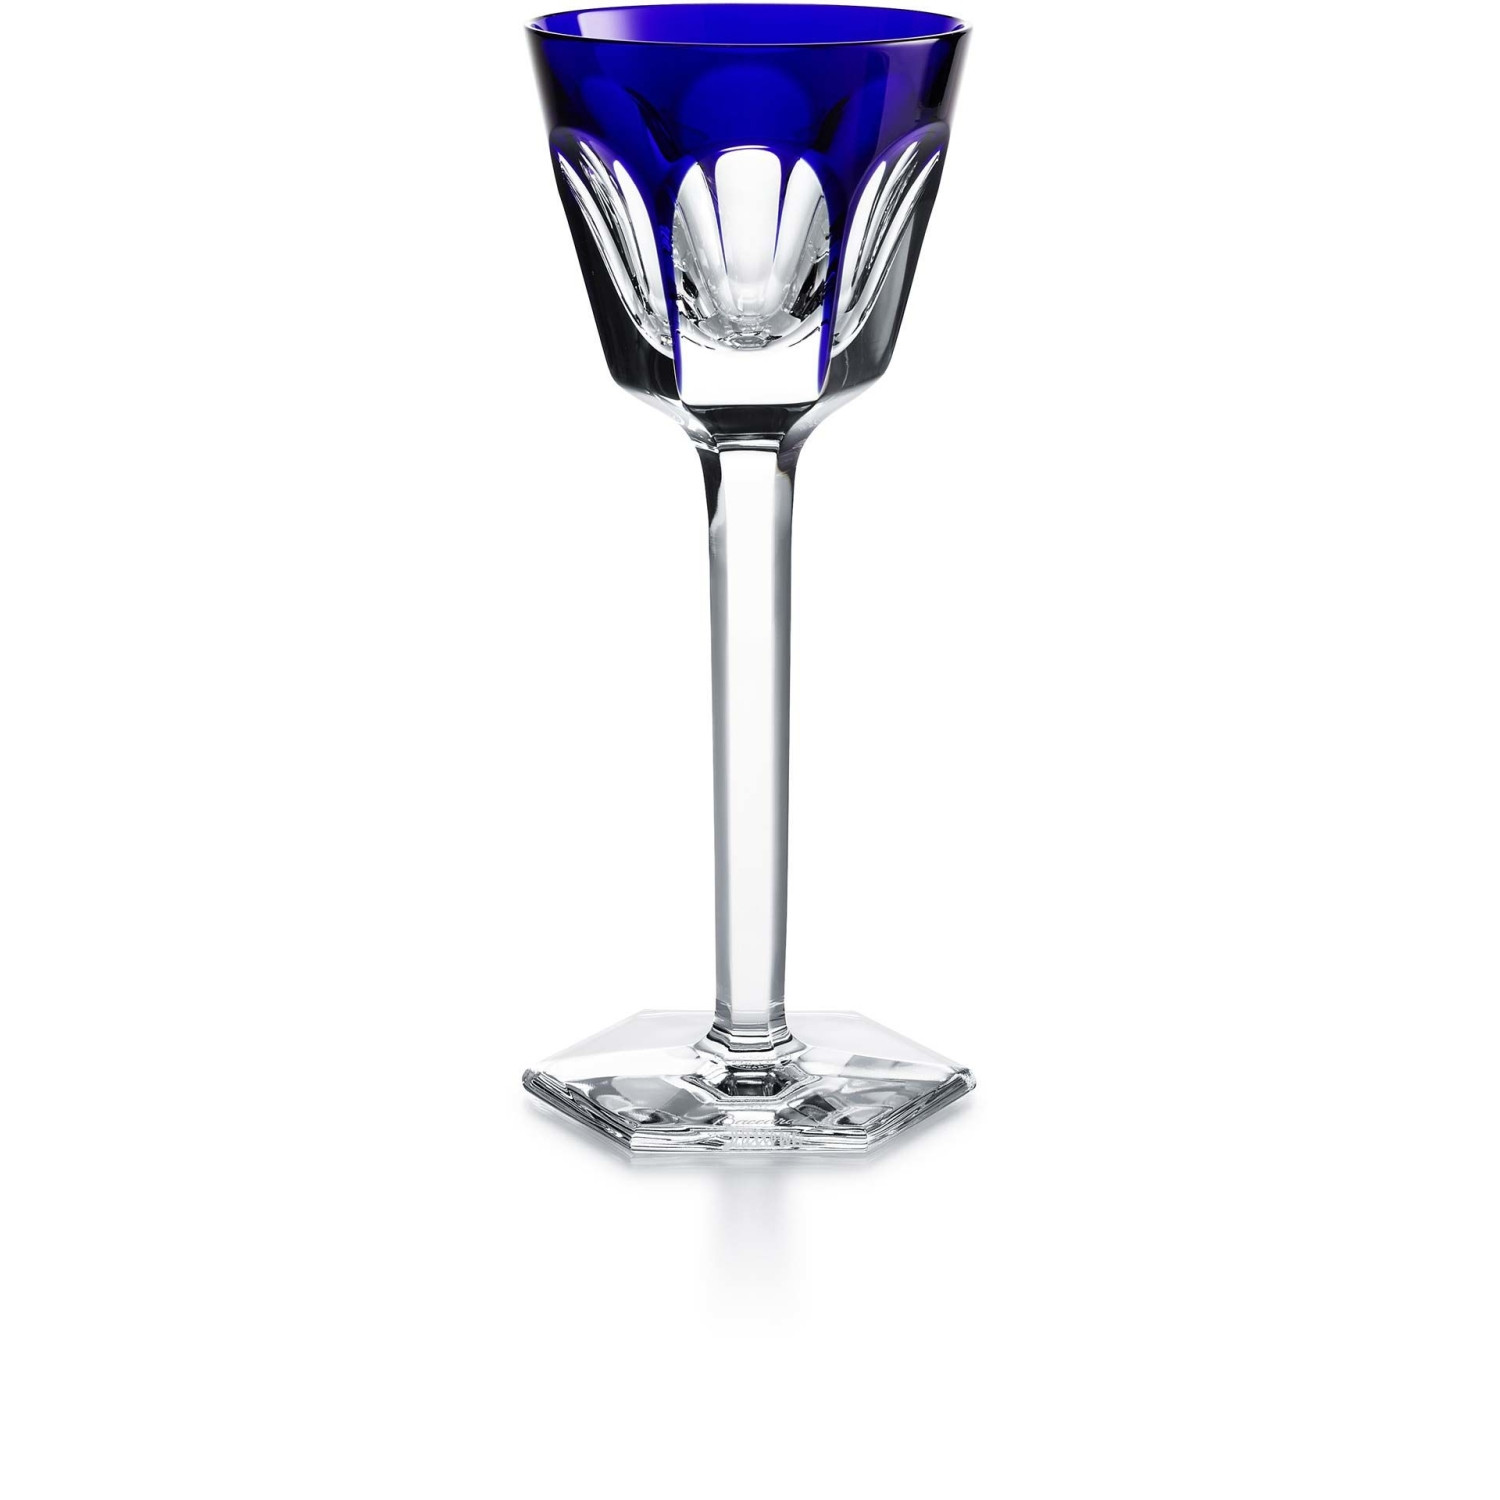 baccarat harmonie vase of glass baccarat harcourt wine glass blue 1201132 with regard to 4 oz baccarat